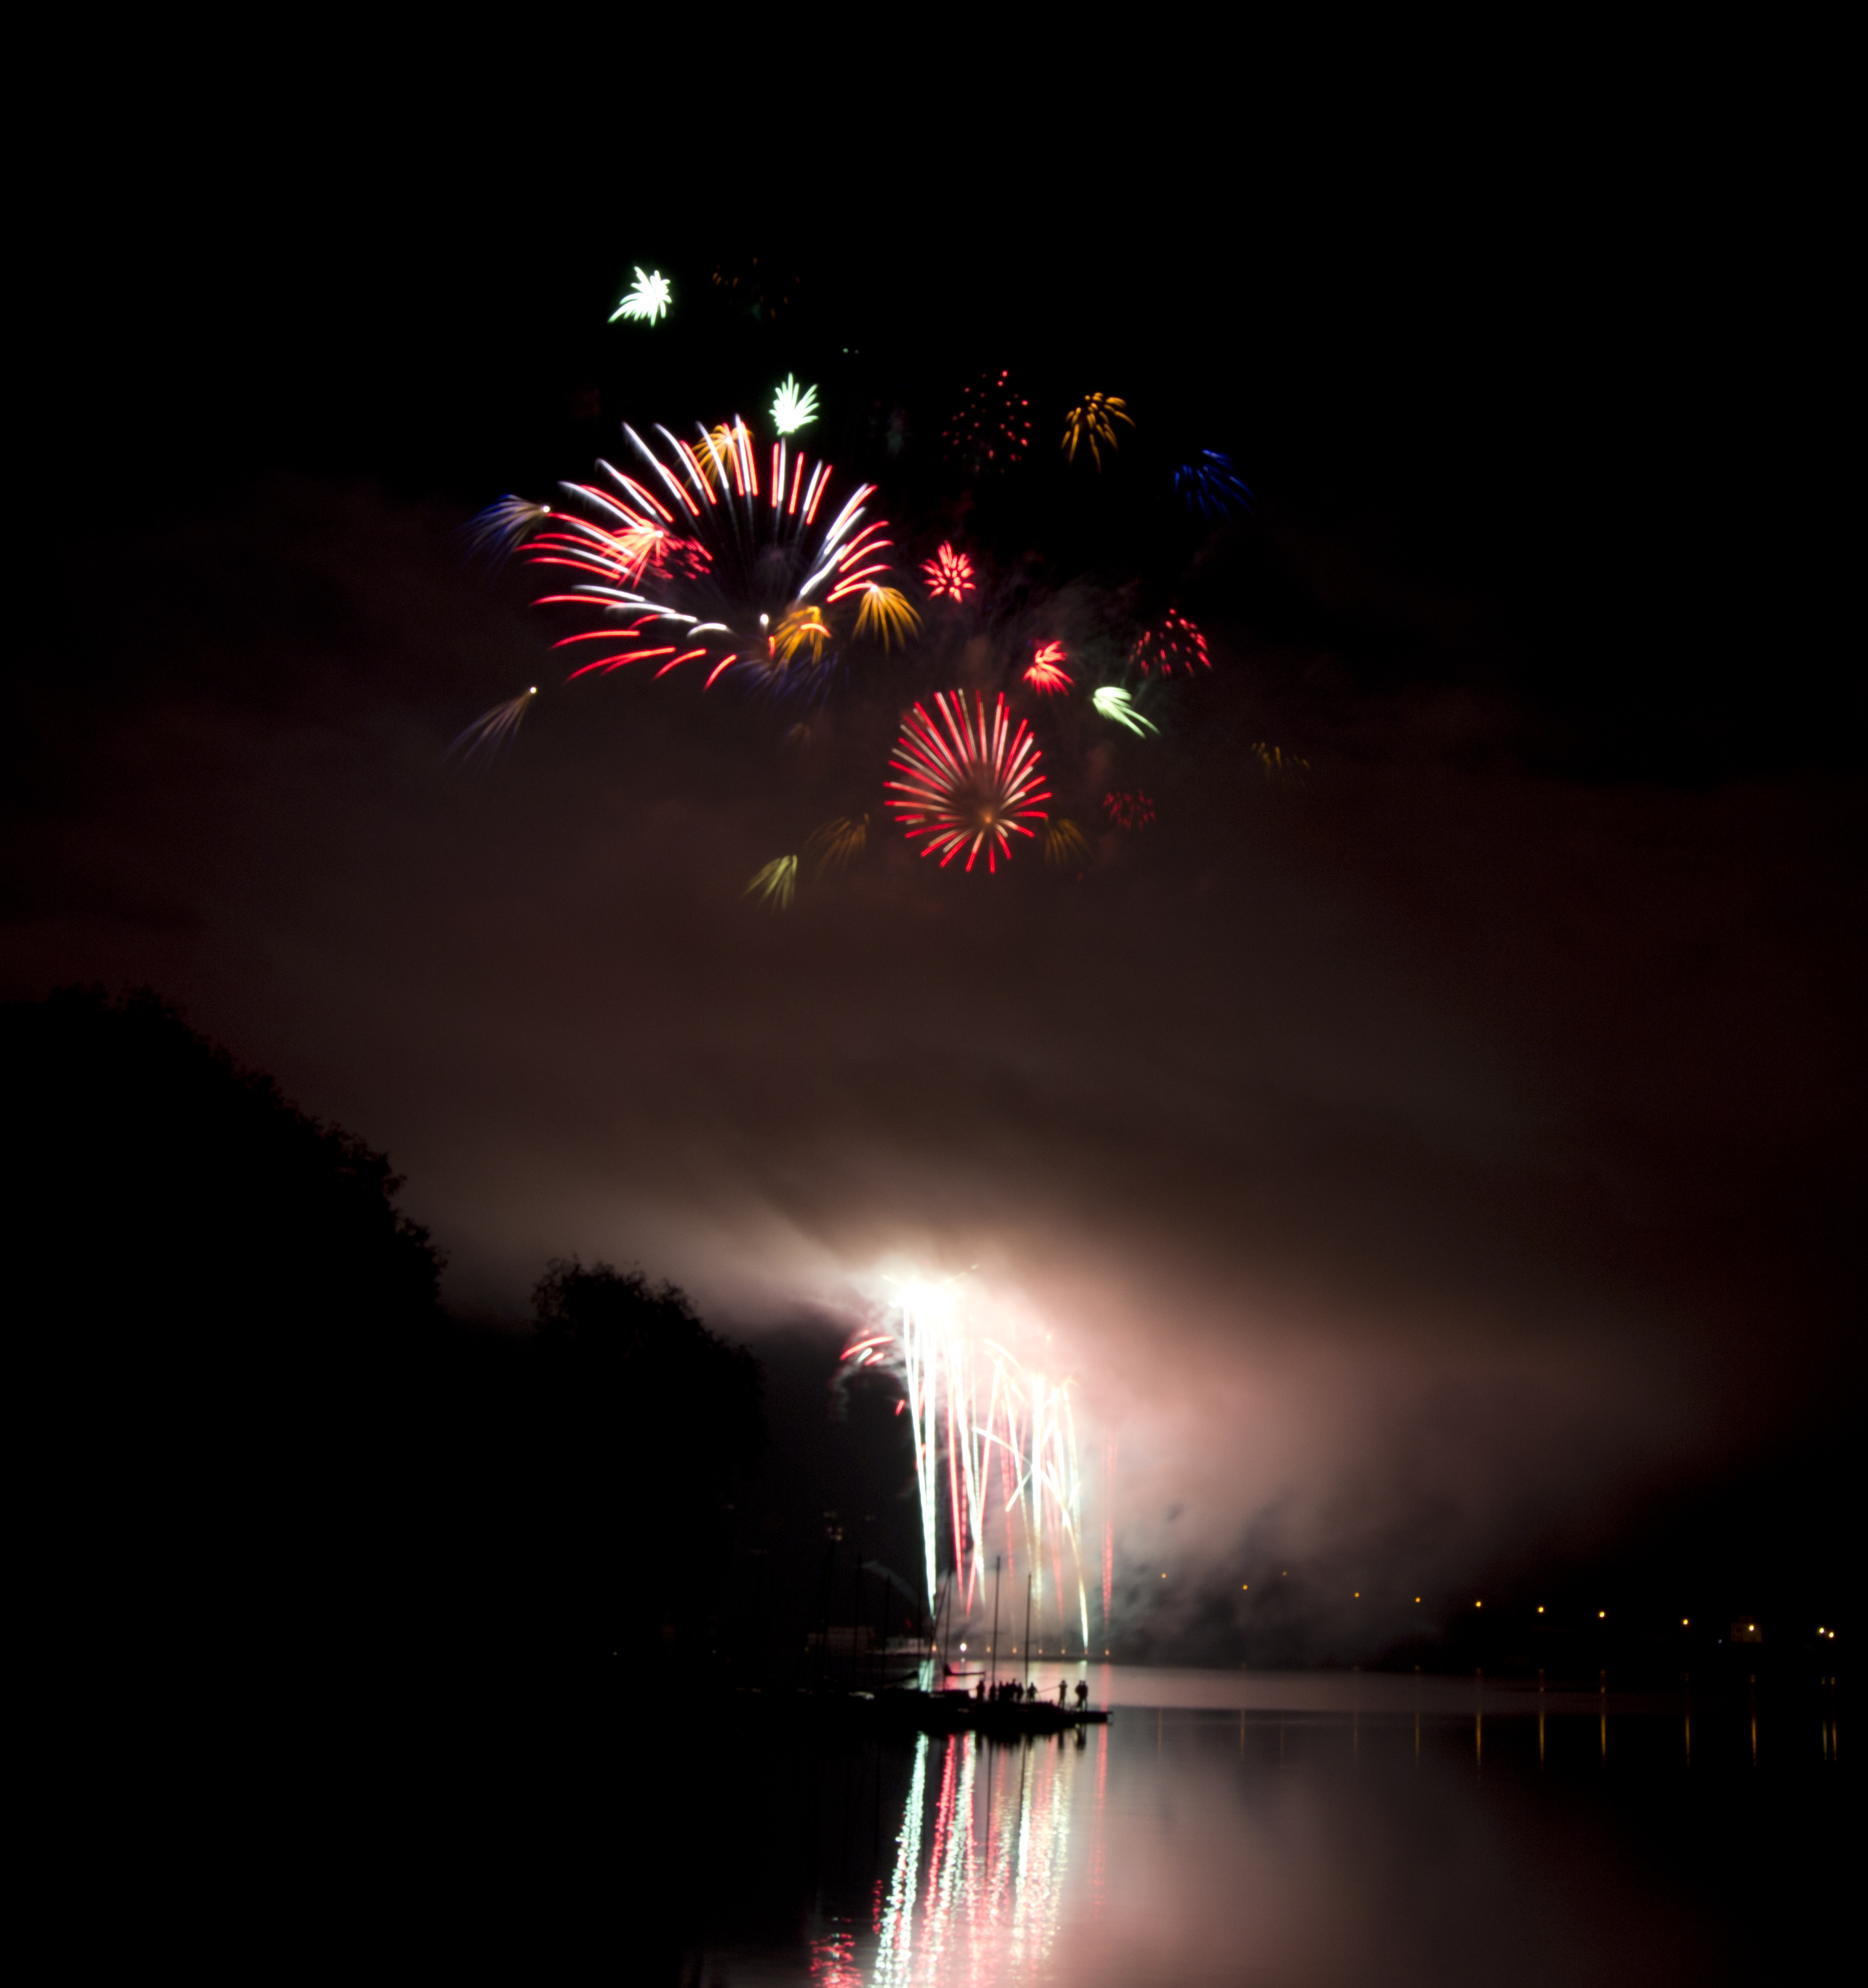 Fireworks Ignis Brunensis #6 by Utopia308